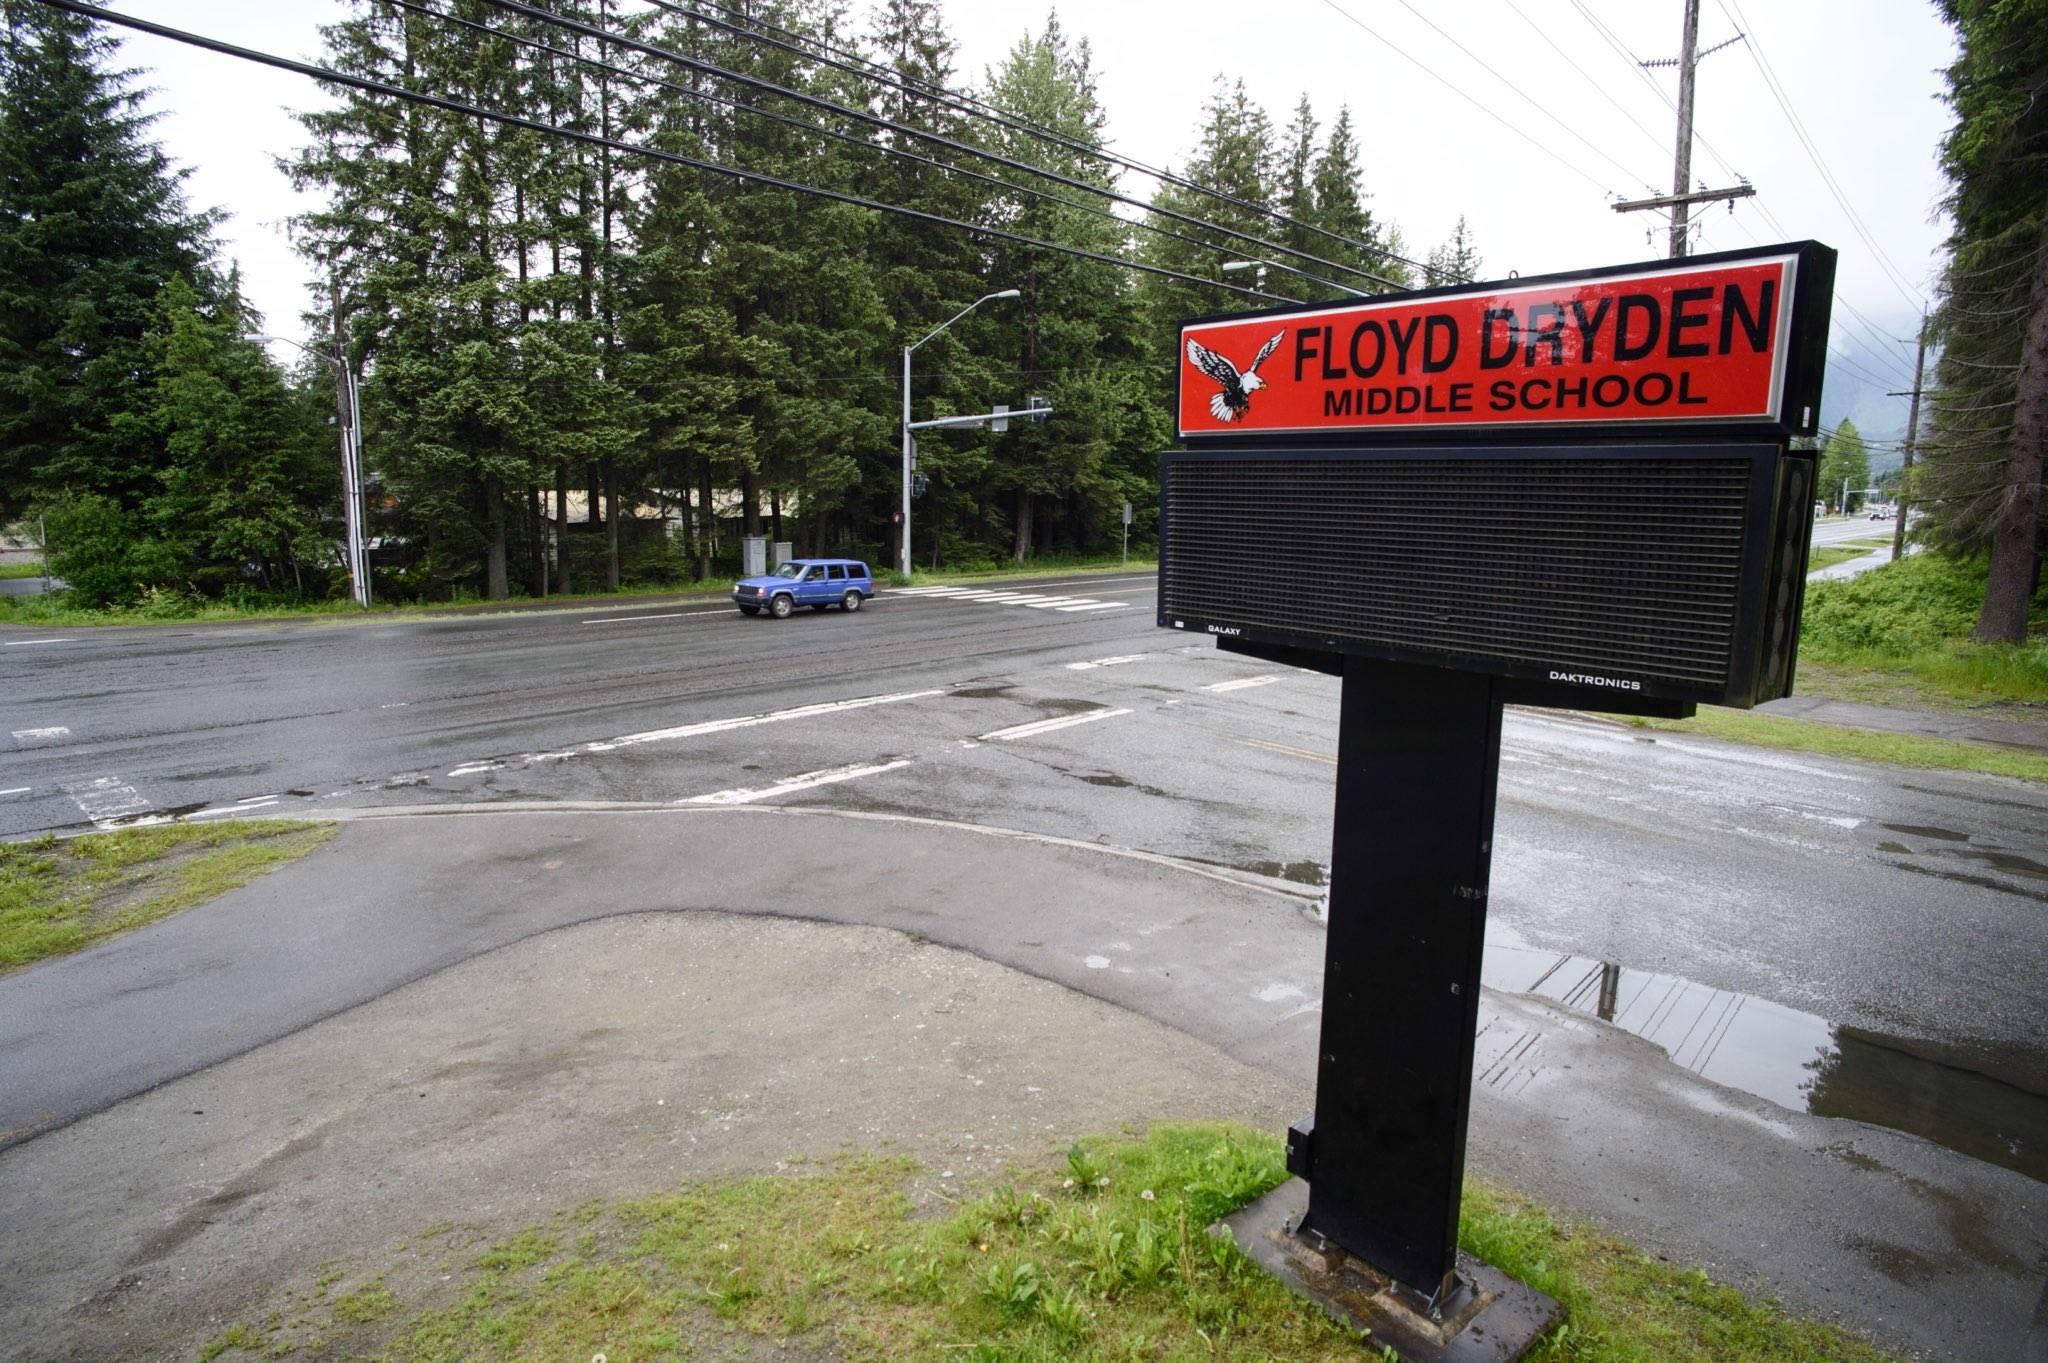 The intersection of Mendenhall Loop Road at Floyd Dryden Middle School, June 11, 2019. The Department of Transportation and Public Facilities plans to build a roundabout at the intersection. (Michael Penn | Juneau Empire)